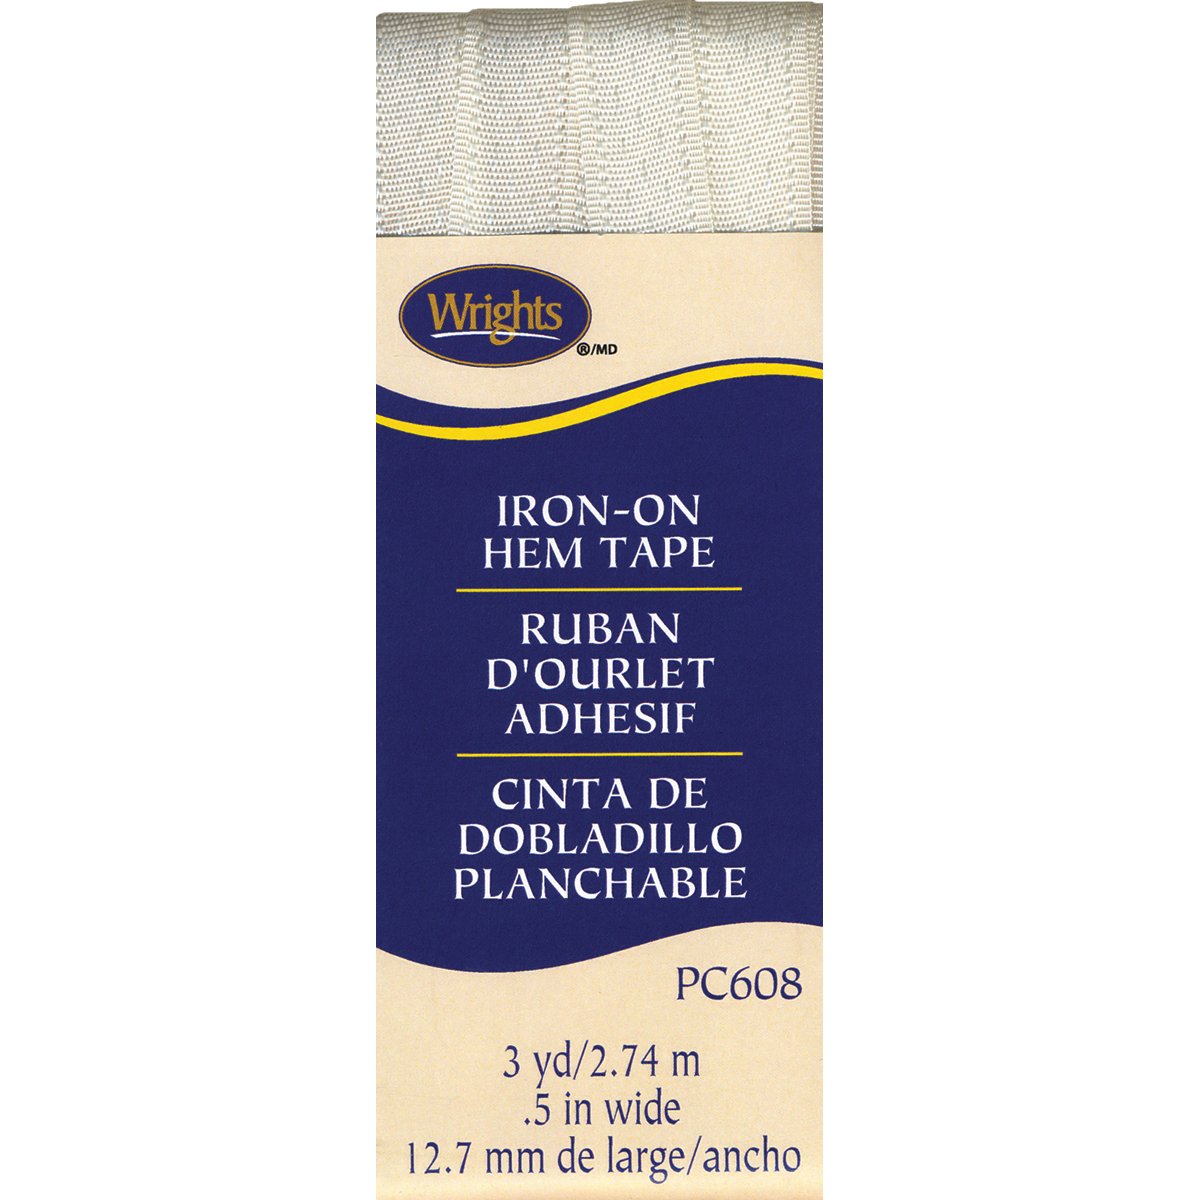 Wrights Iron-On Hem Tape, 1/2 by 3-Yard, Oyster Multi-Colored